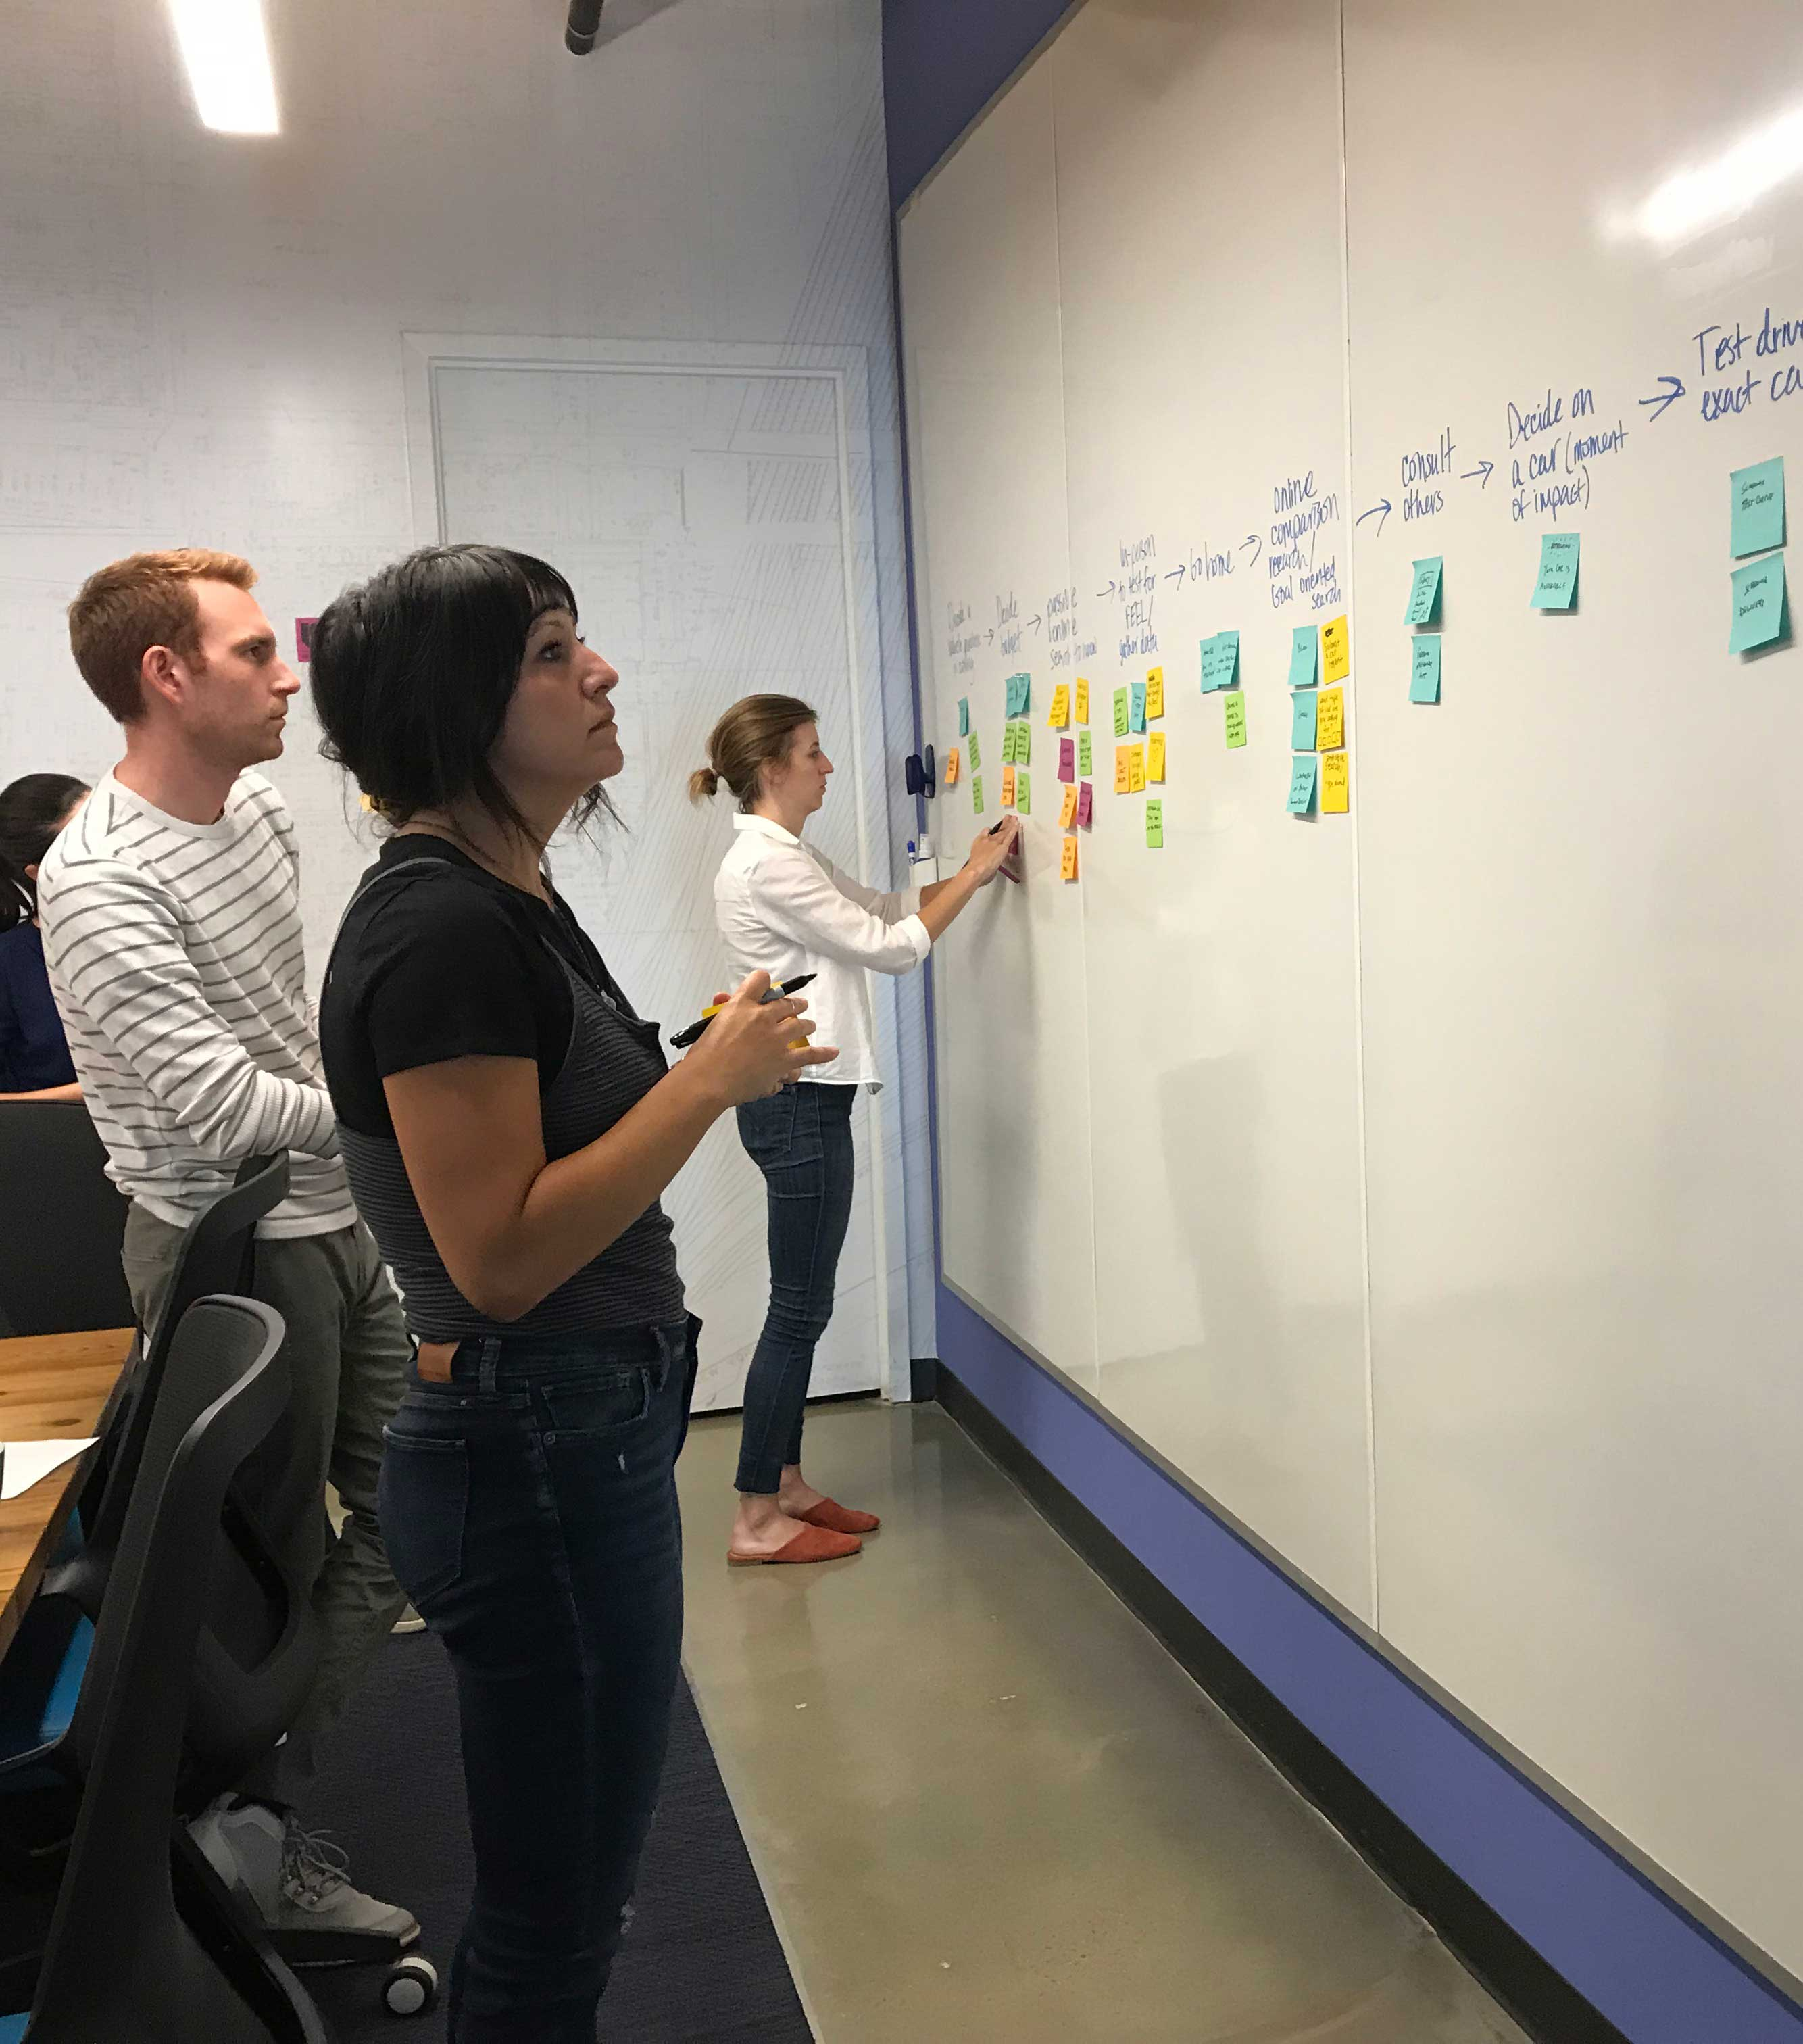 VW clients working with us to identify a user journey